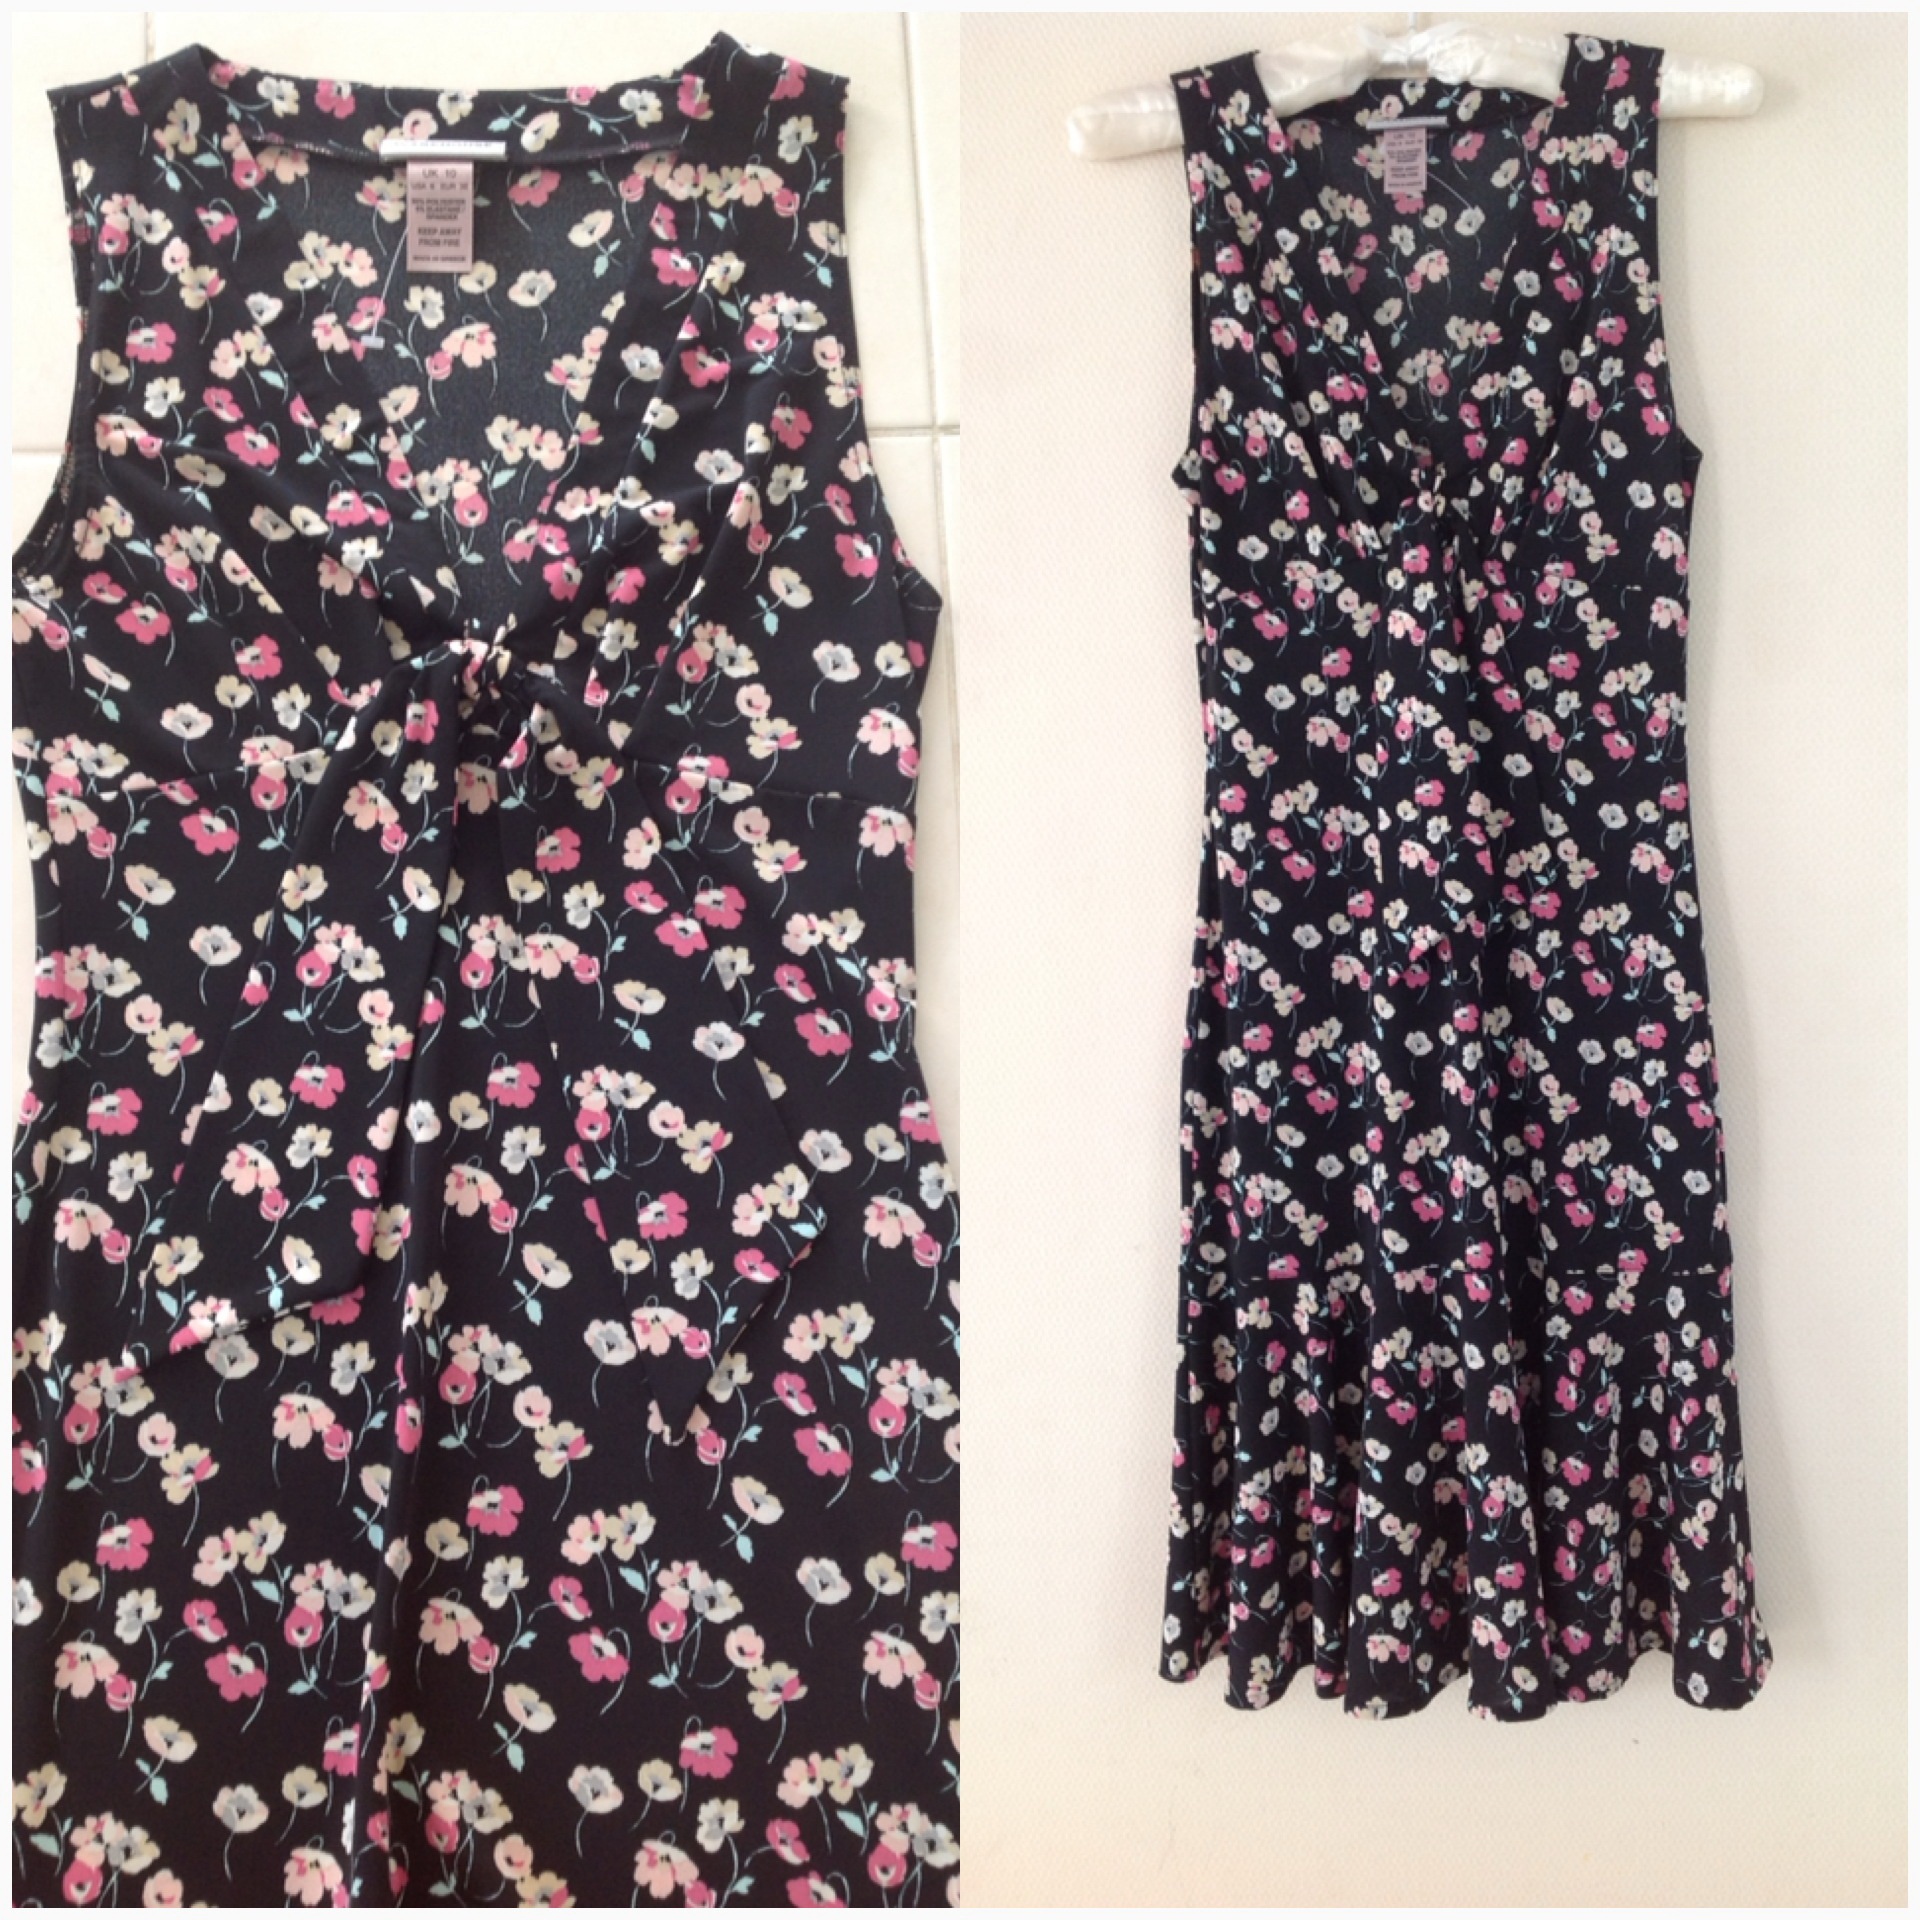 Warehouse Floral Dress size UK10